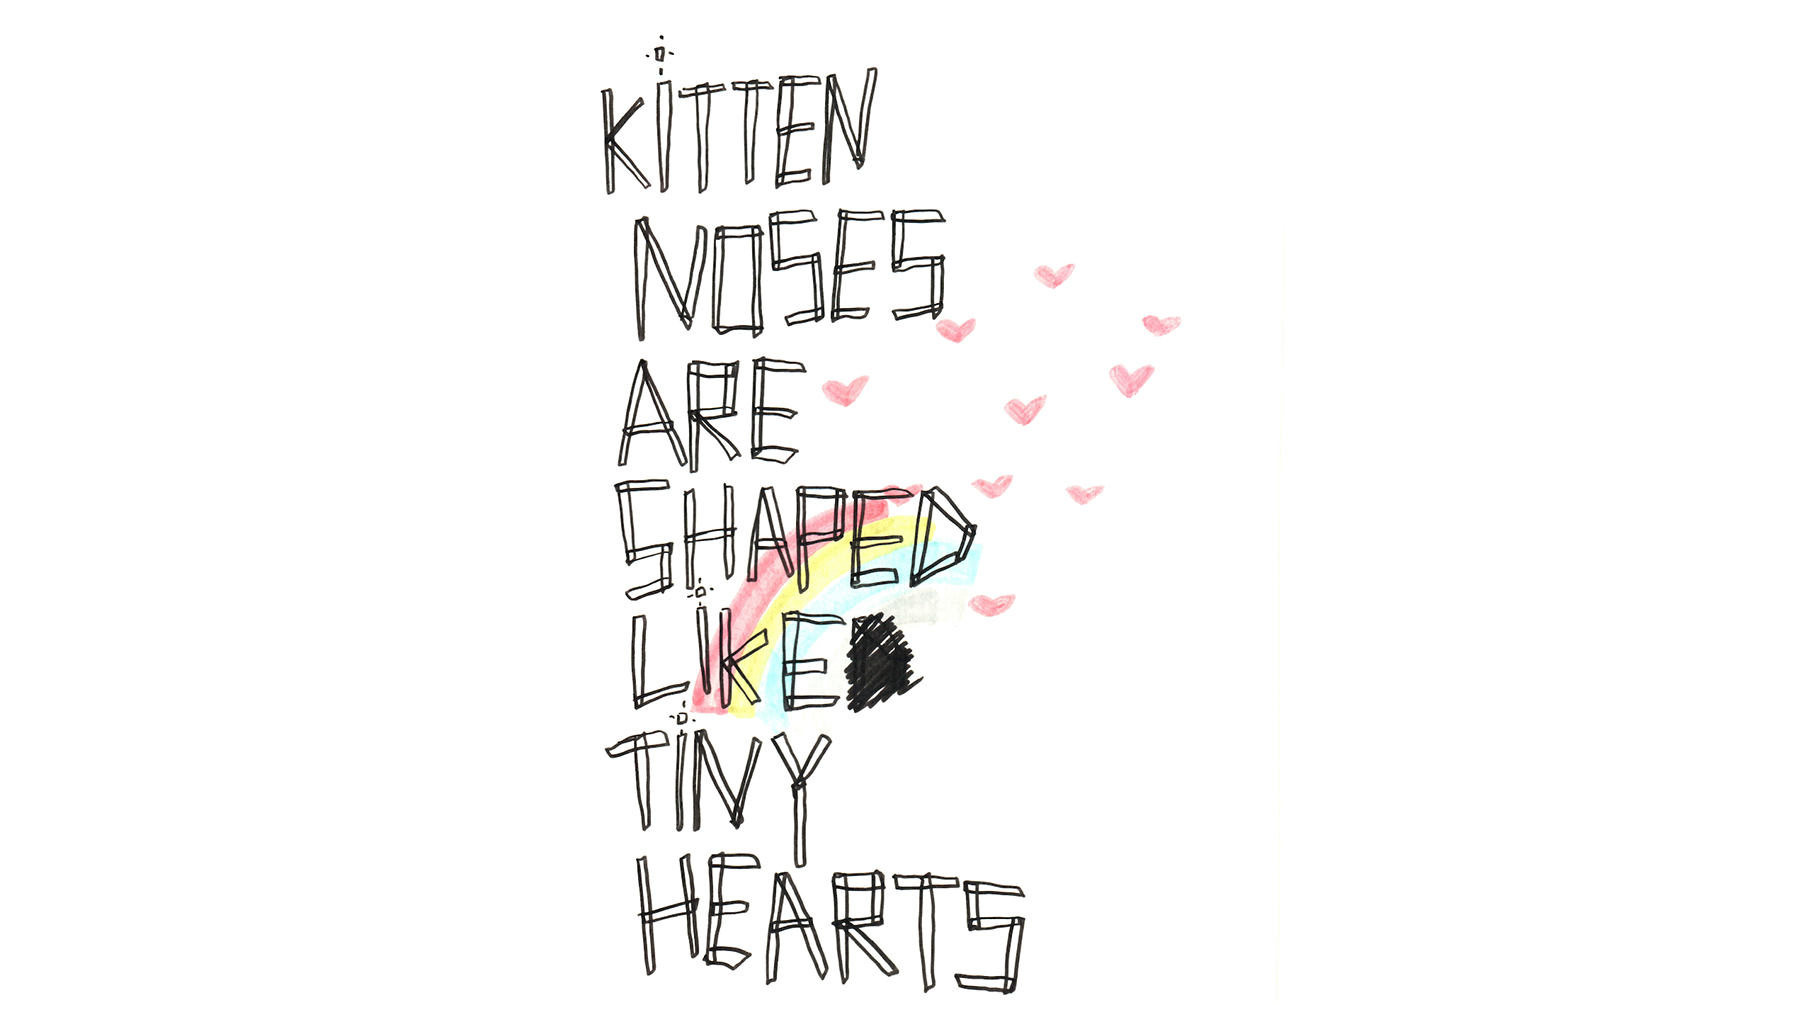 kittennoses.png